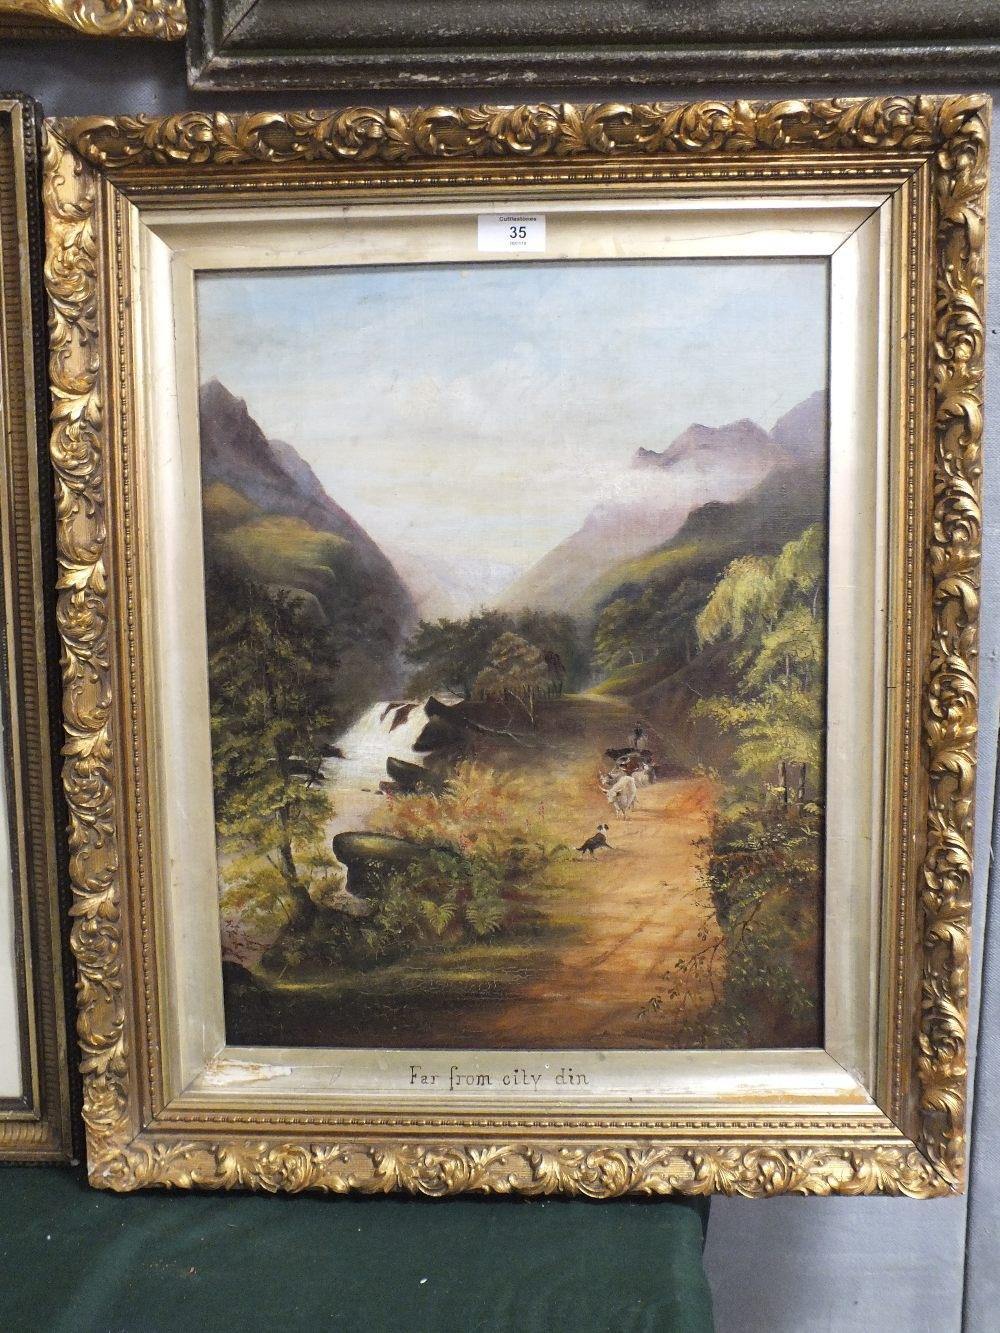 Lot 35 - A GILT FRAMED OIL ON CANVAS DEPICTING A MOUNTAINOUS RIVER SCENE WITH CATTLE ENTITLED 'FAR FROM